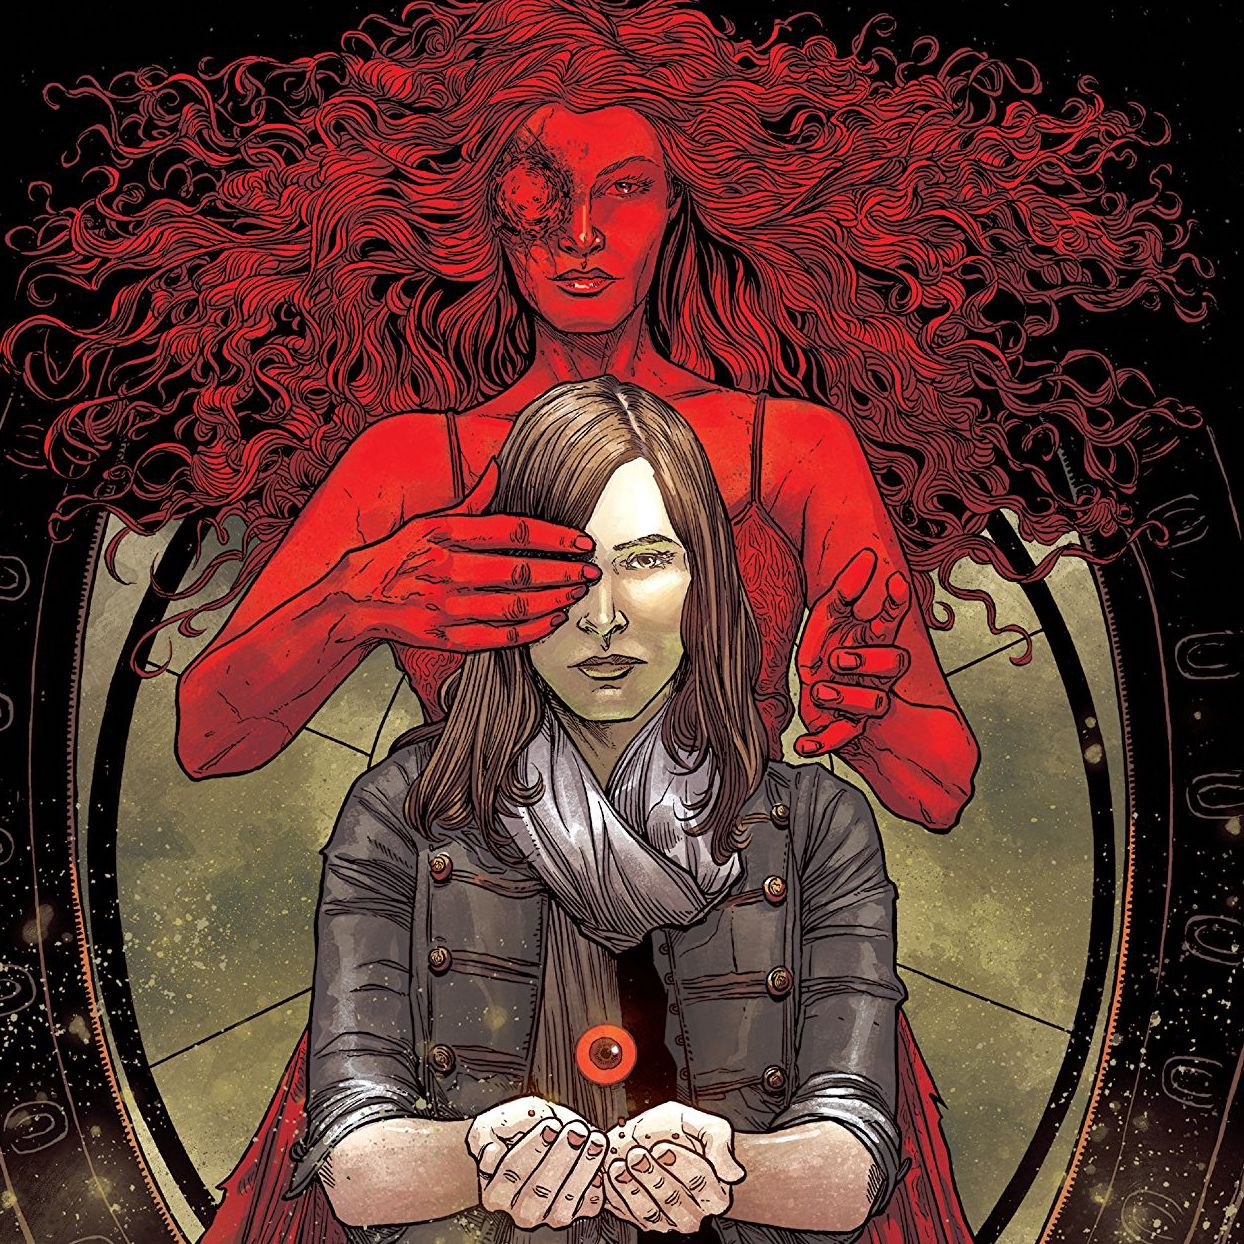 For someone like me who has a phobia of their eyes being touched, the new horror comic series from Jeremy Haun (writer) and Danny Luckert (artist) might not be recommended reading.